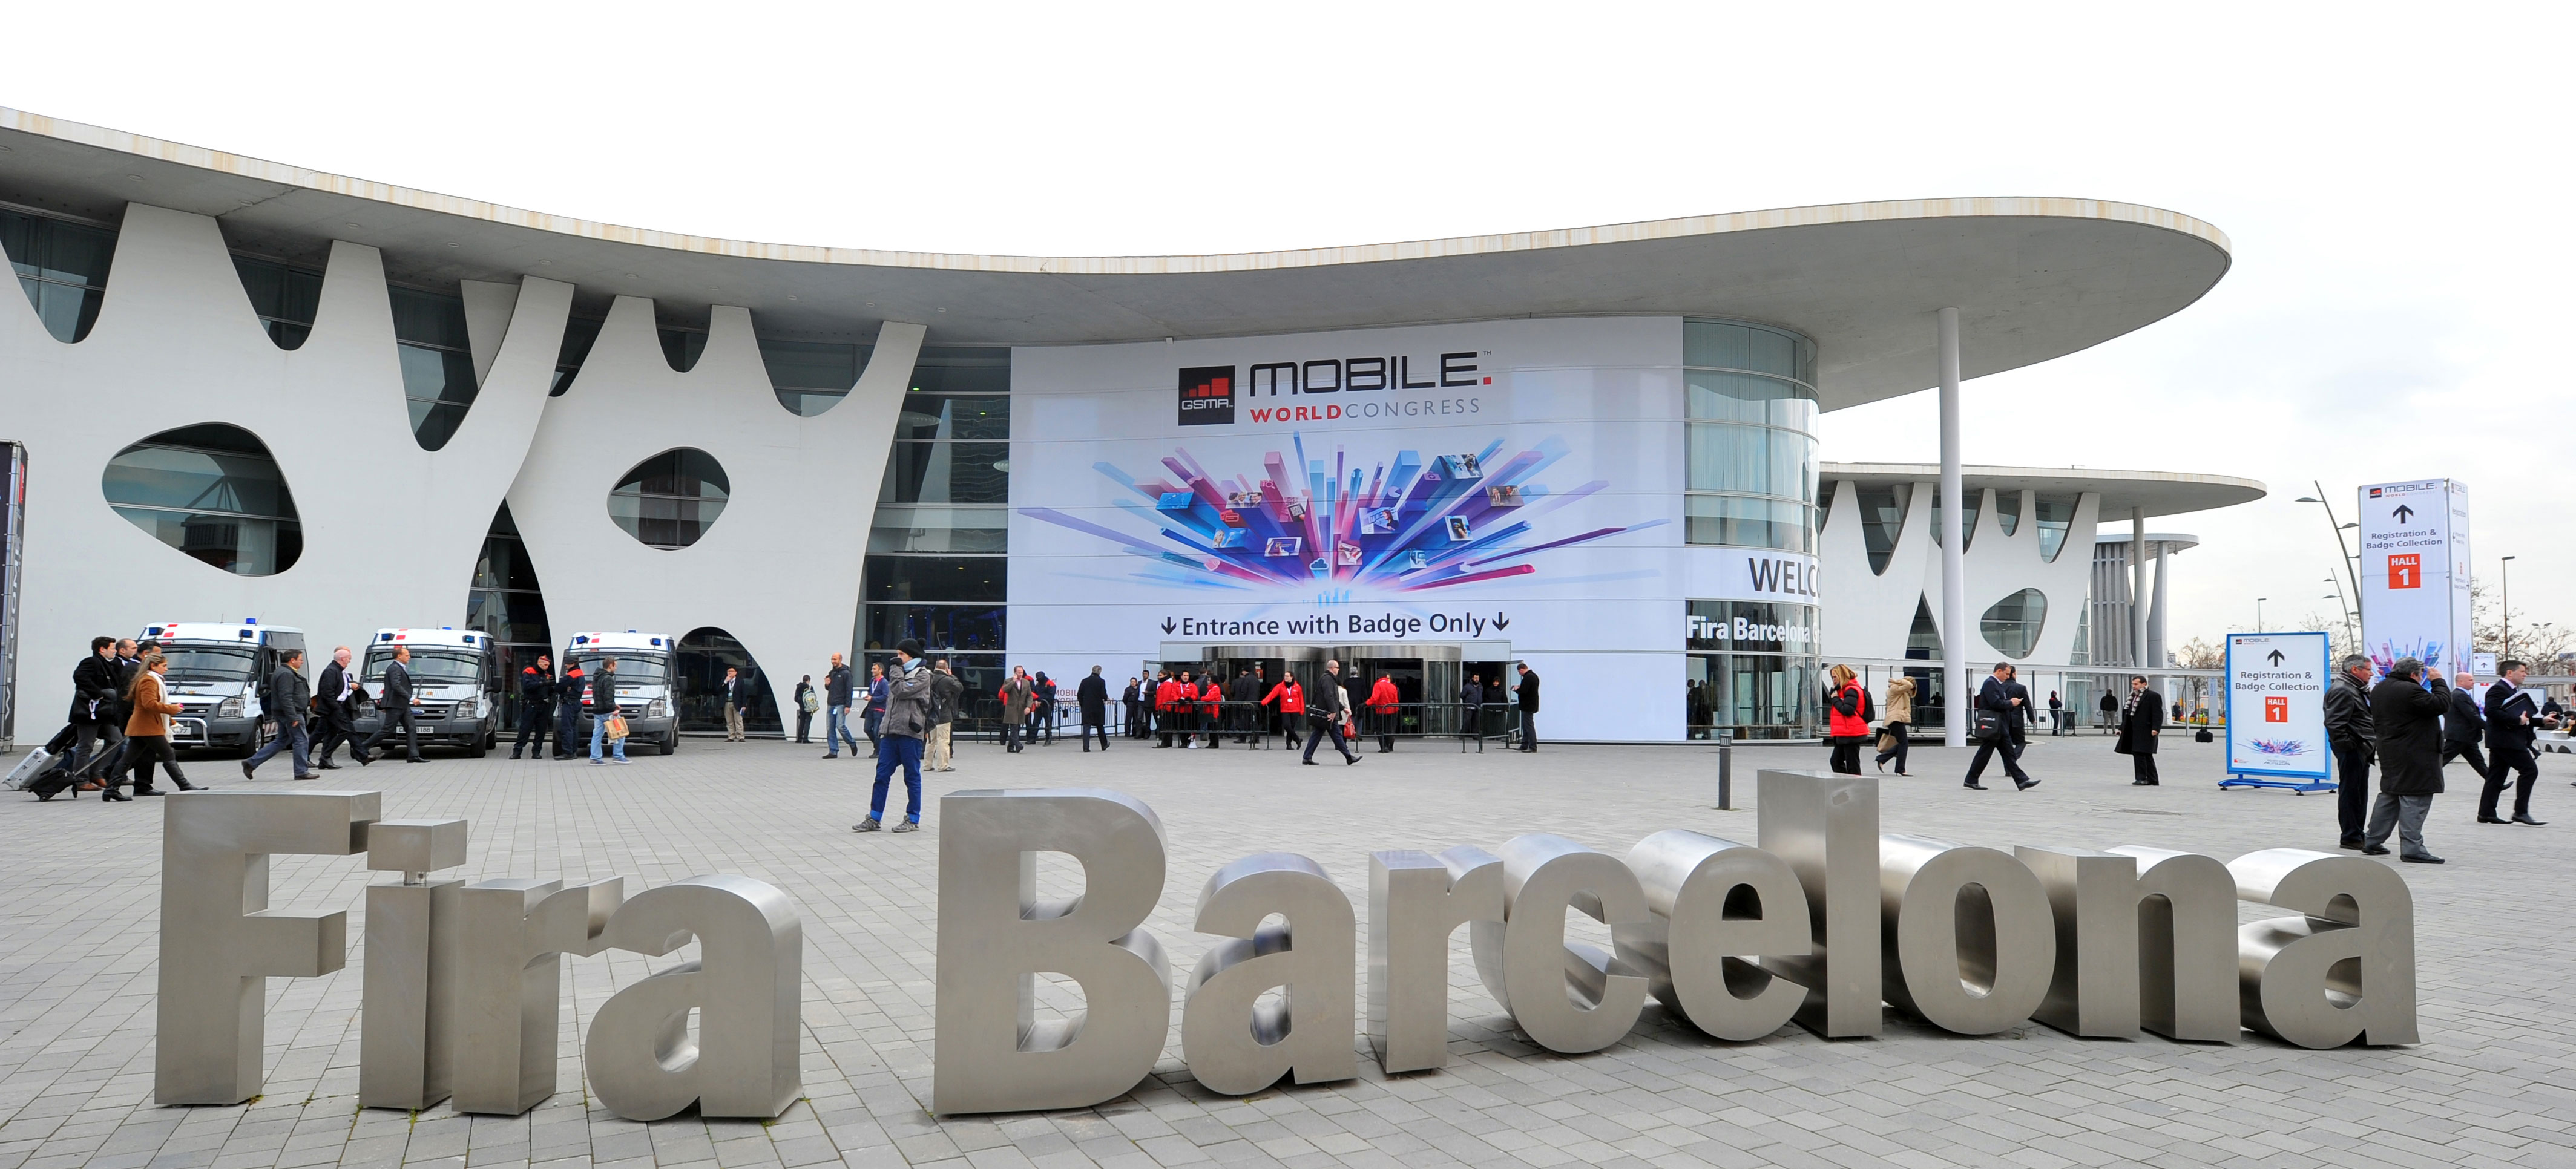 Activa YA tu plan de comunicación para el Mobile World Congress